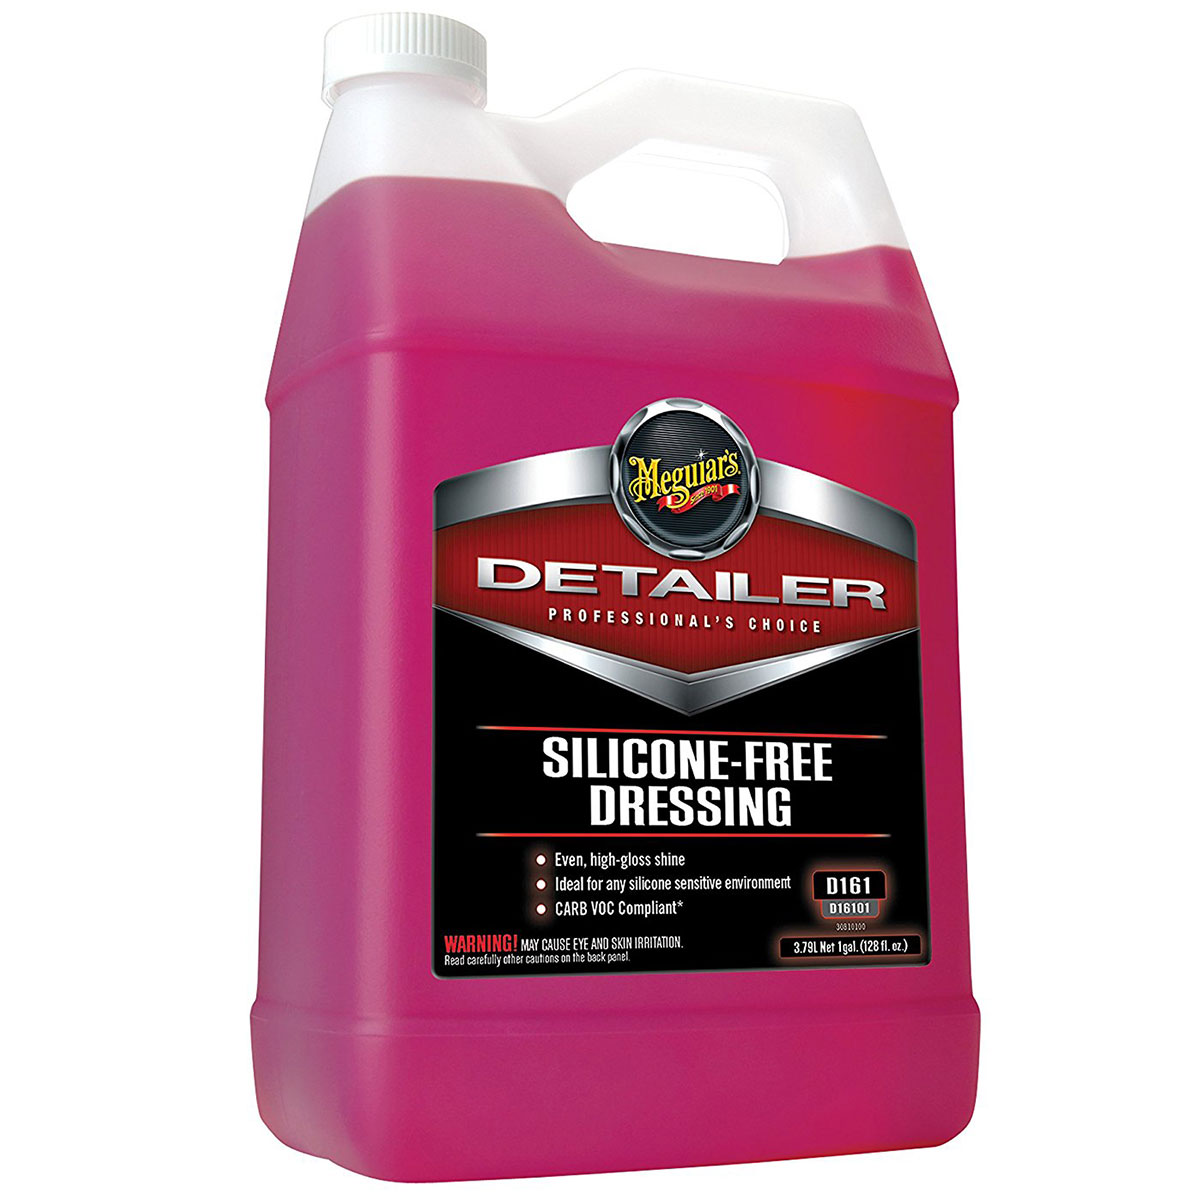 Silicone-Free Dressing Meguiars